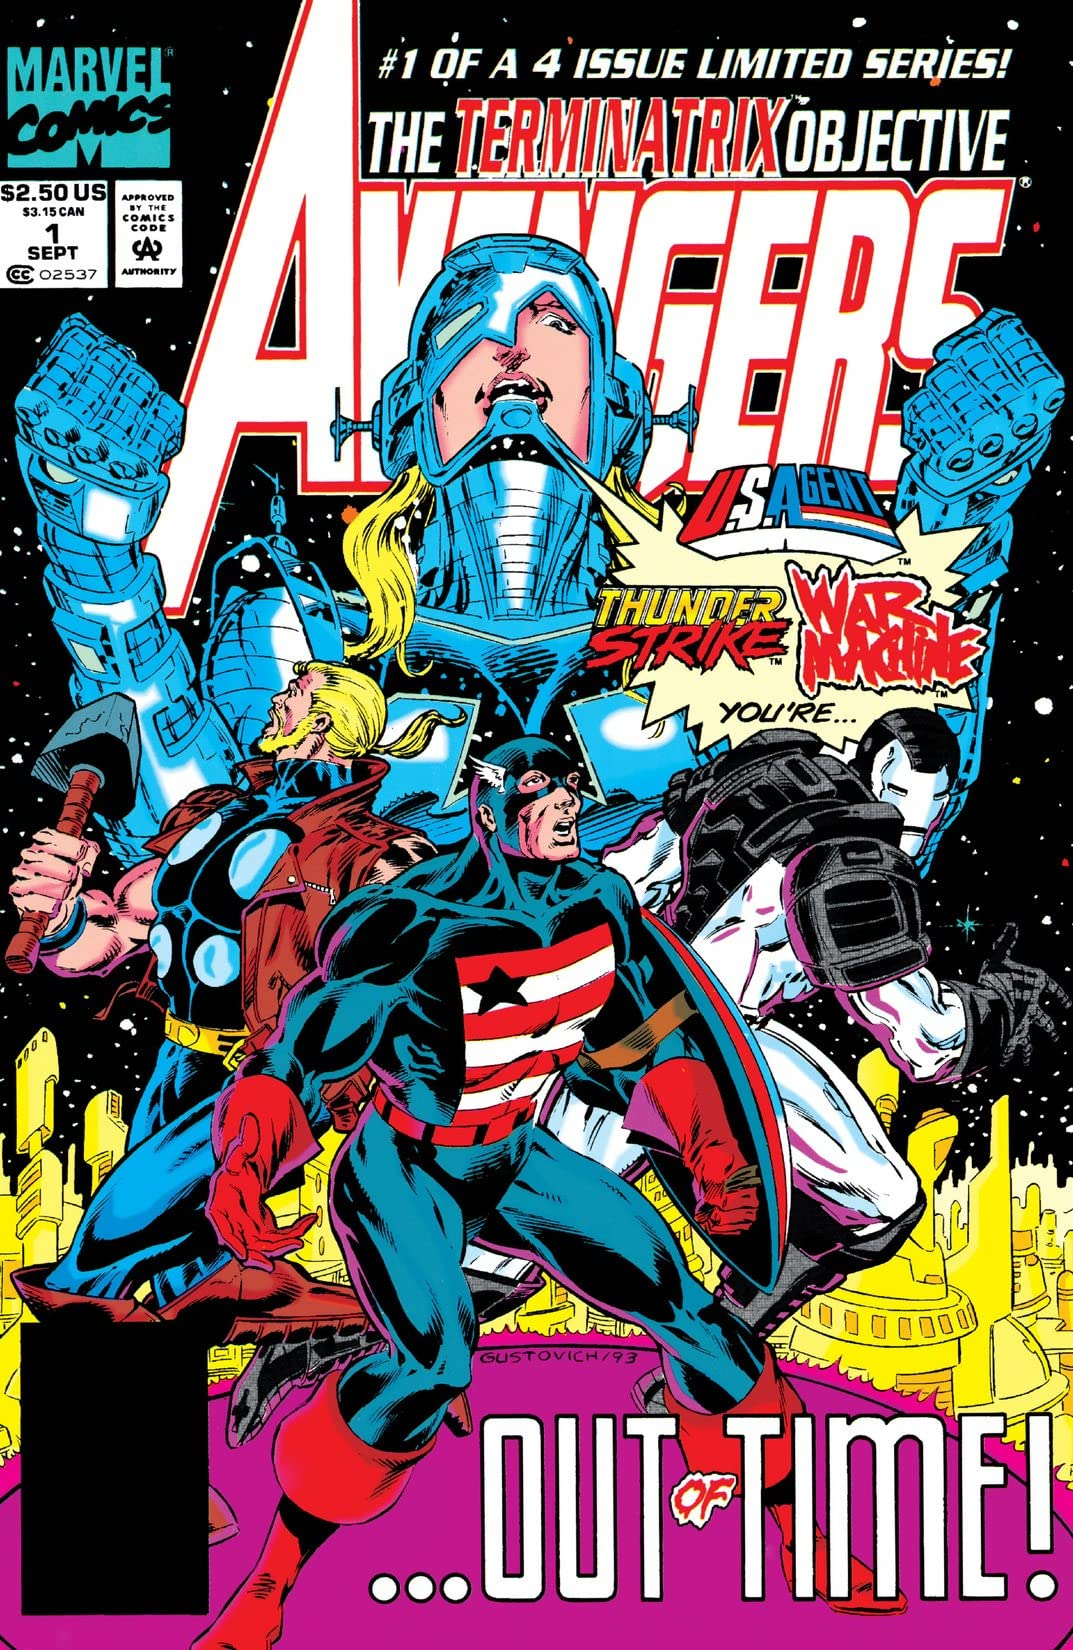 Avengers: The Terminatrix Objective (1993) #1 (of 4)